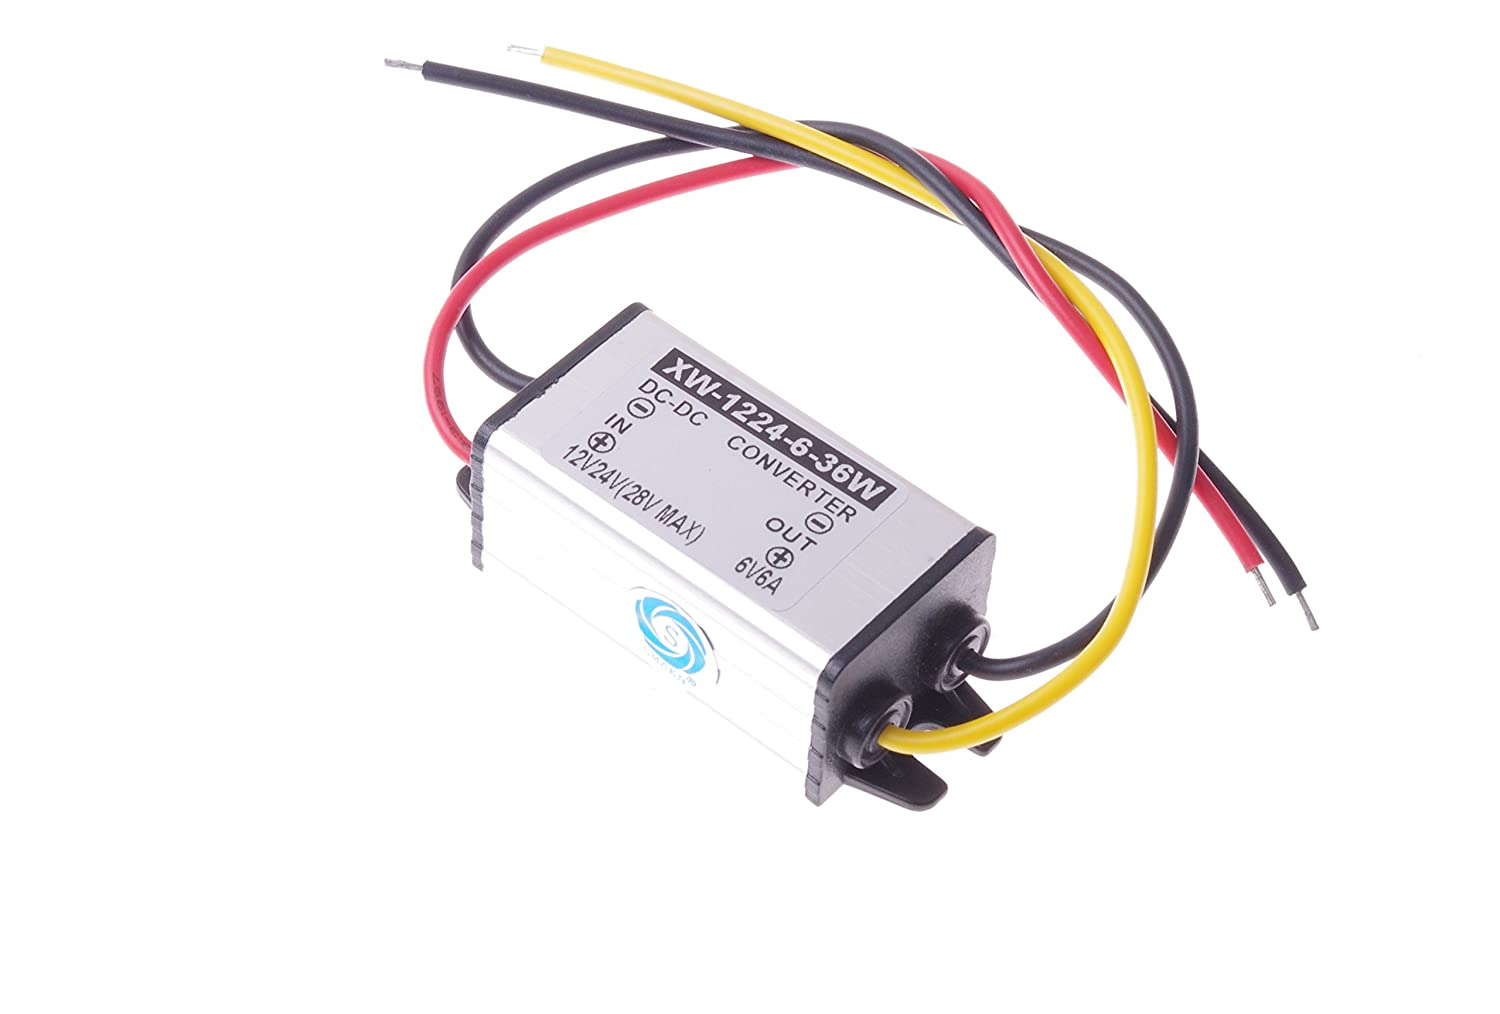 Smakn Dc 12v To 6v 6a 36w Buck Power Converter Tda2003 Voltage Circuits Step Down Supply Waterproof Automotive